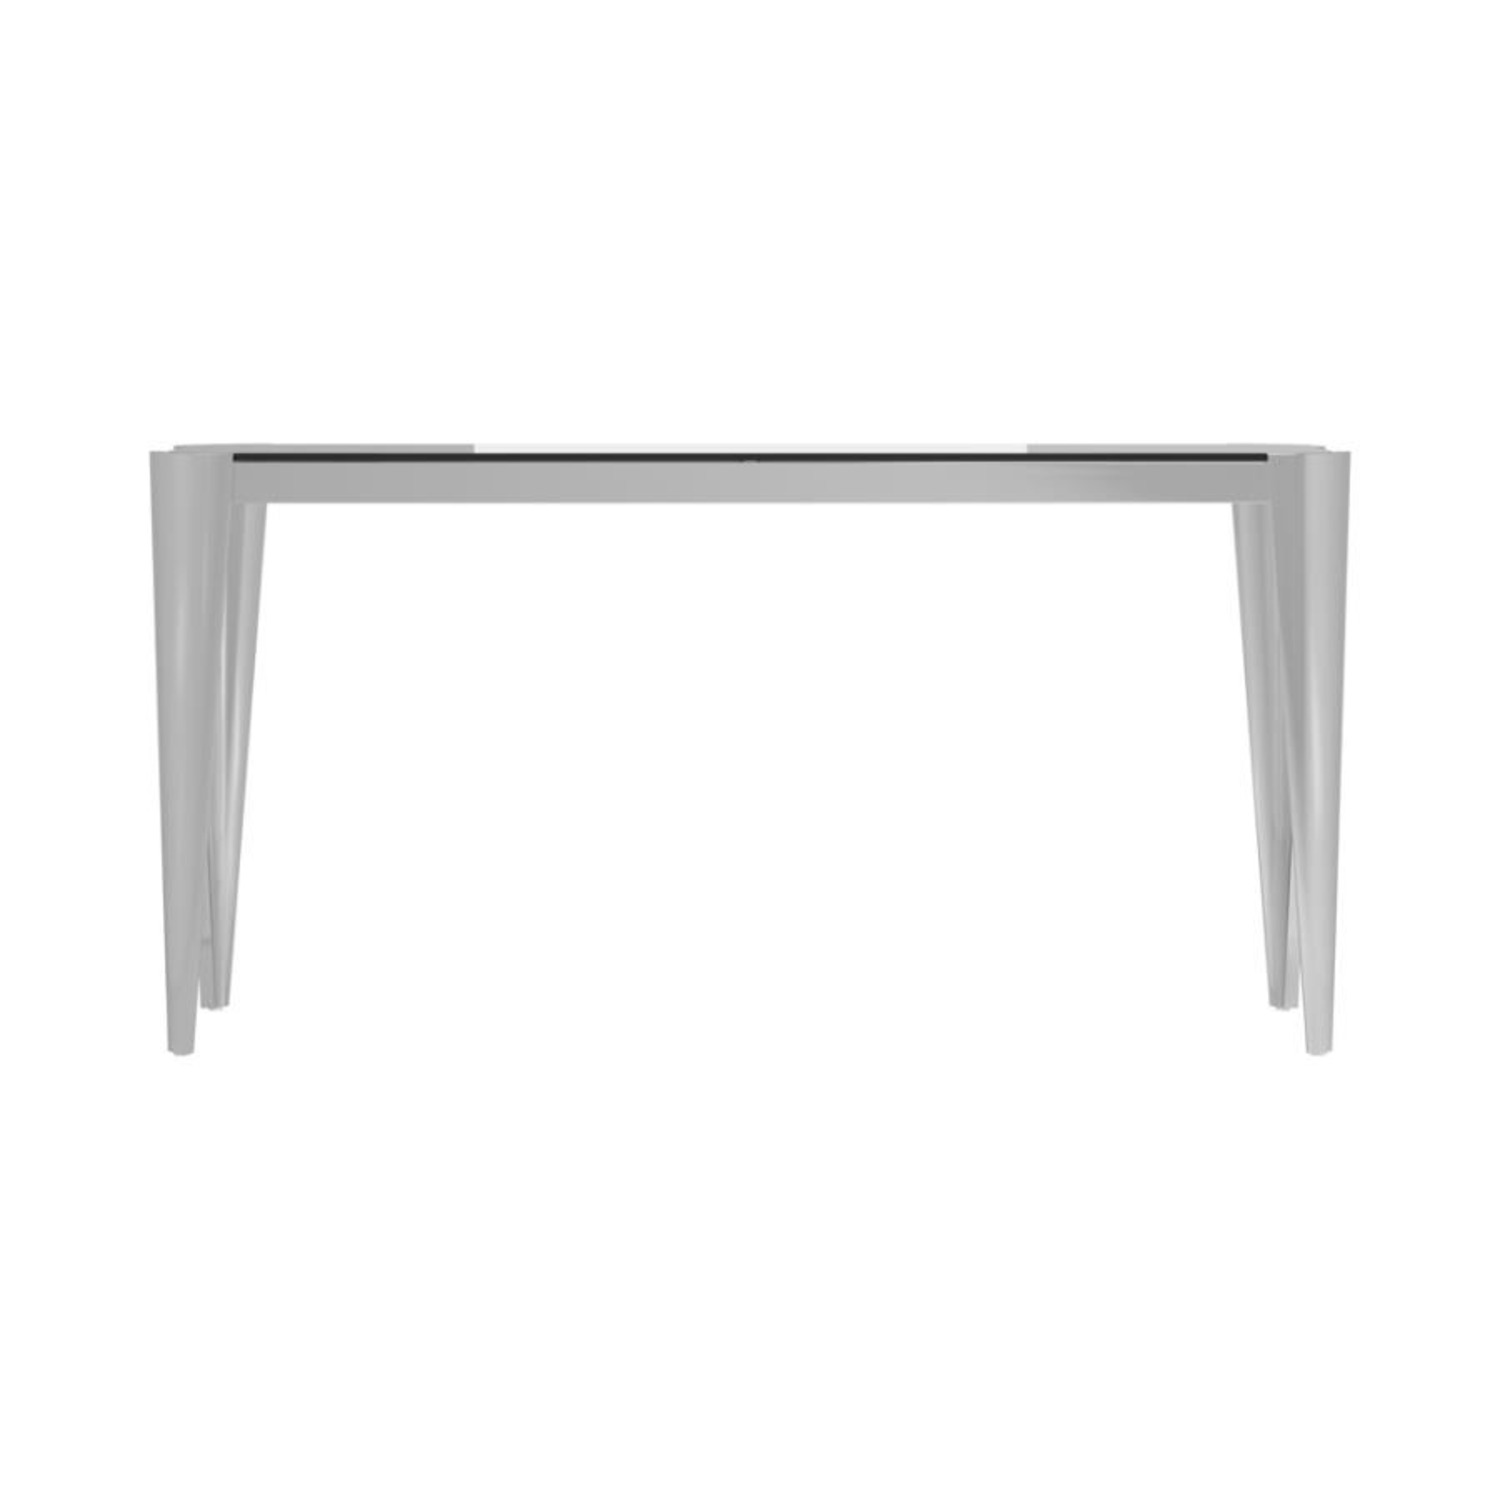 Sofa Table In Silver W/ Grey Tempered Glass Top - image-2